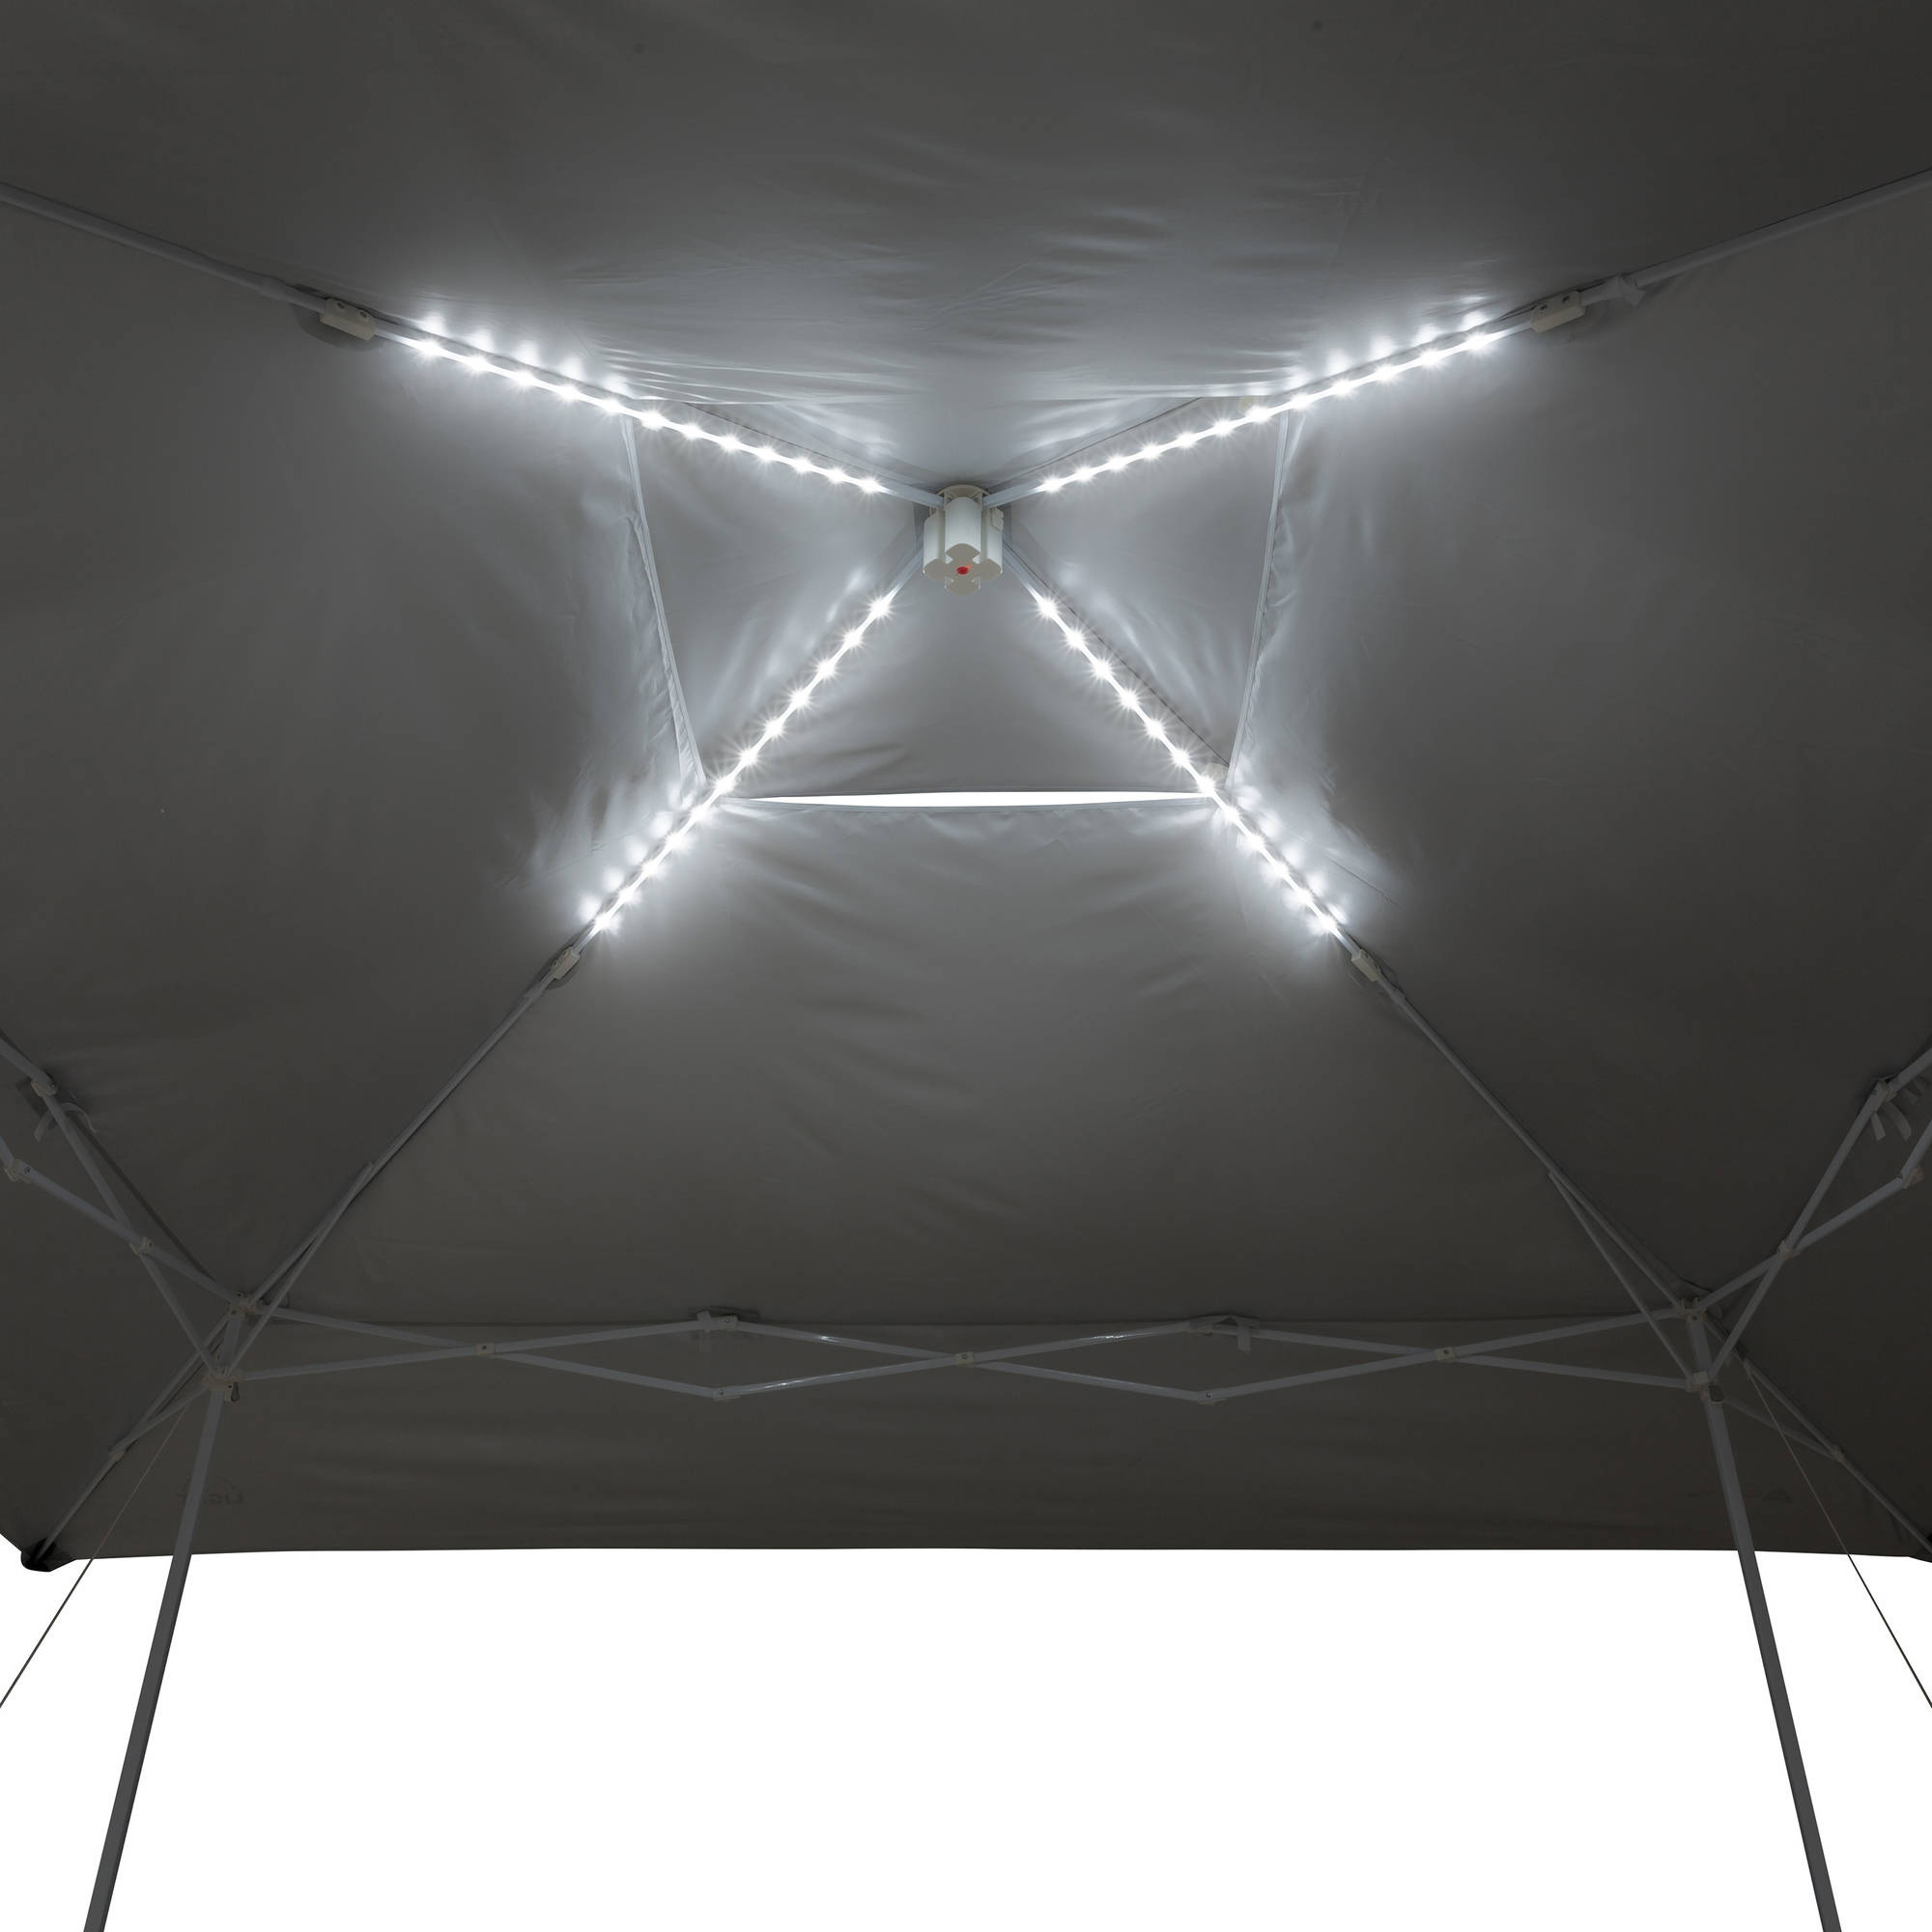 Ozark Trail 14u0027 x 14u0027 Instant Canopy With Led Lighting System - Walmart.com & Ozark Trail 14u0027 x 14u0027 Instant Canopy With Led Lighting System ...